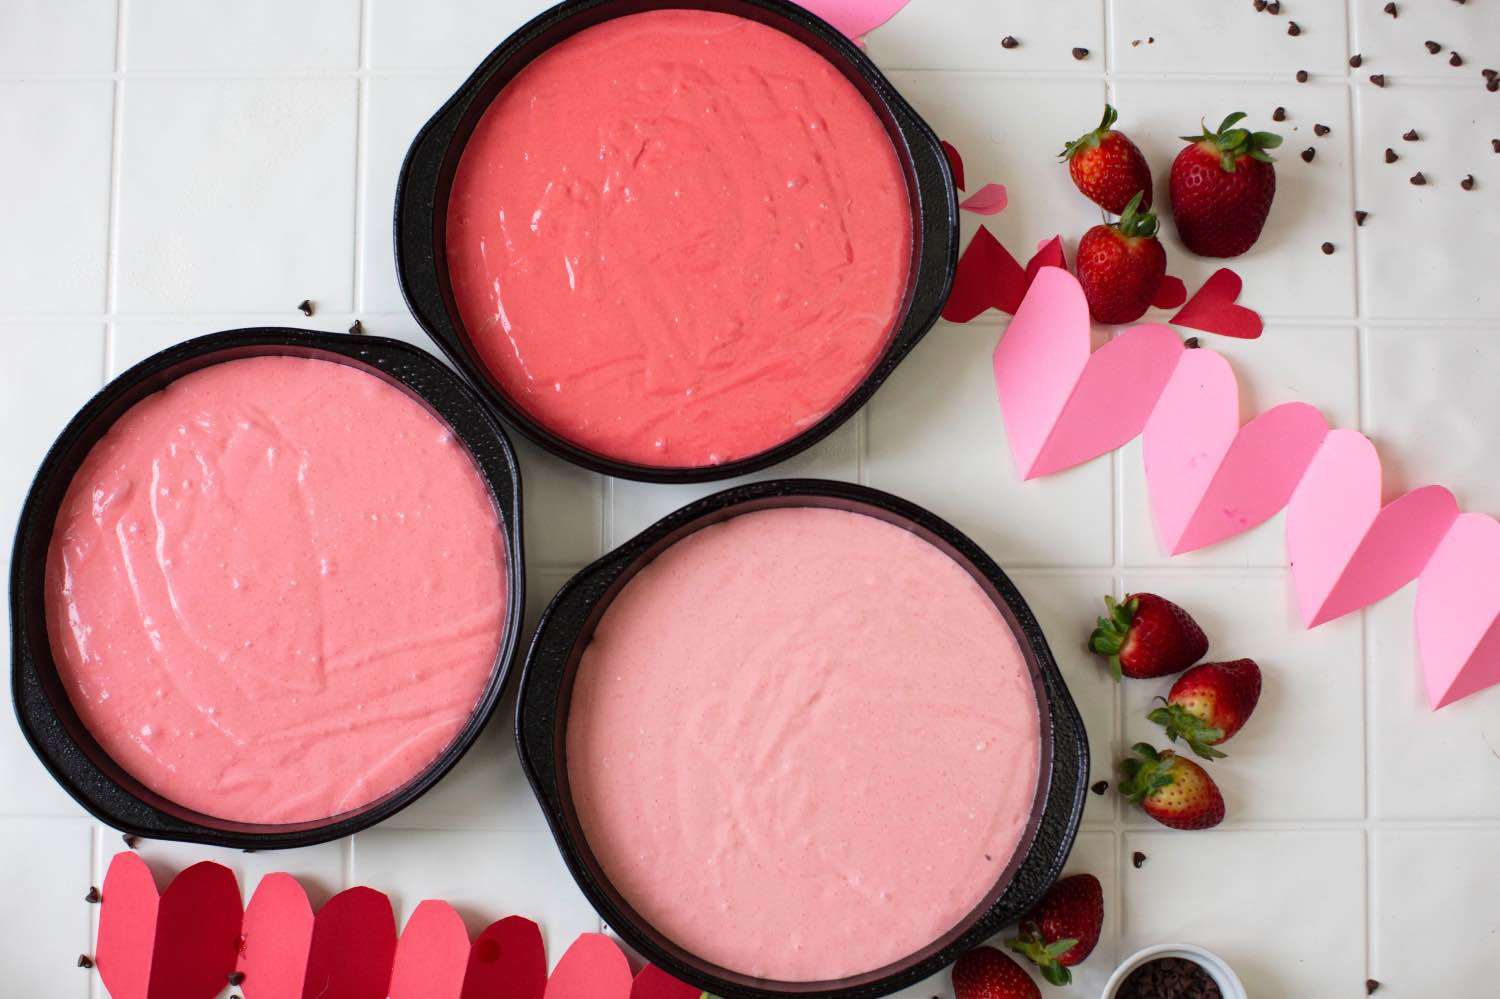 strawberry ombre cake inside 3 round 9 inch tins pop shop america